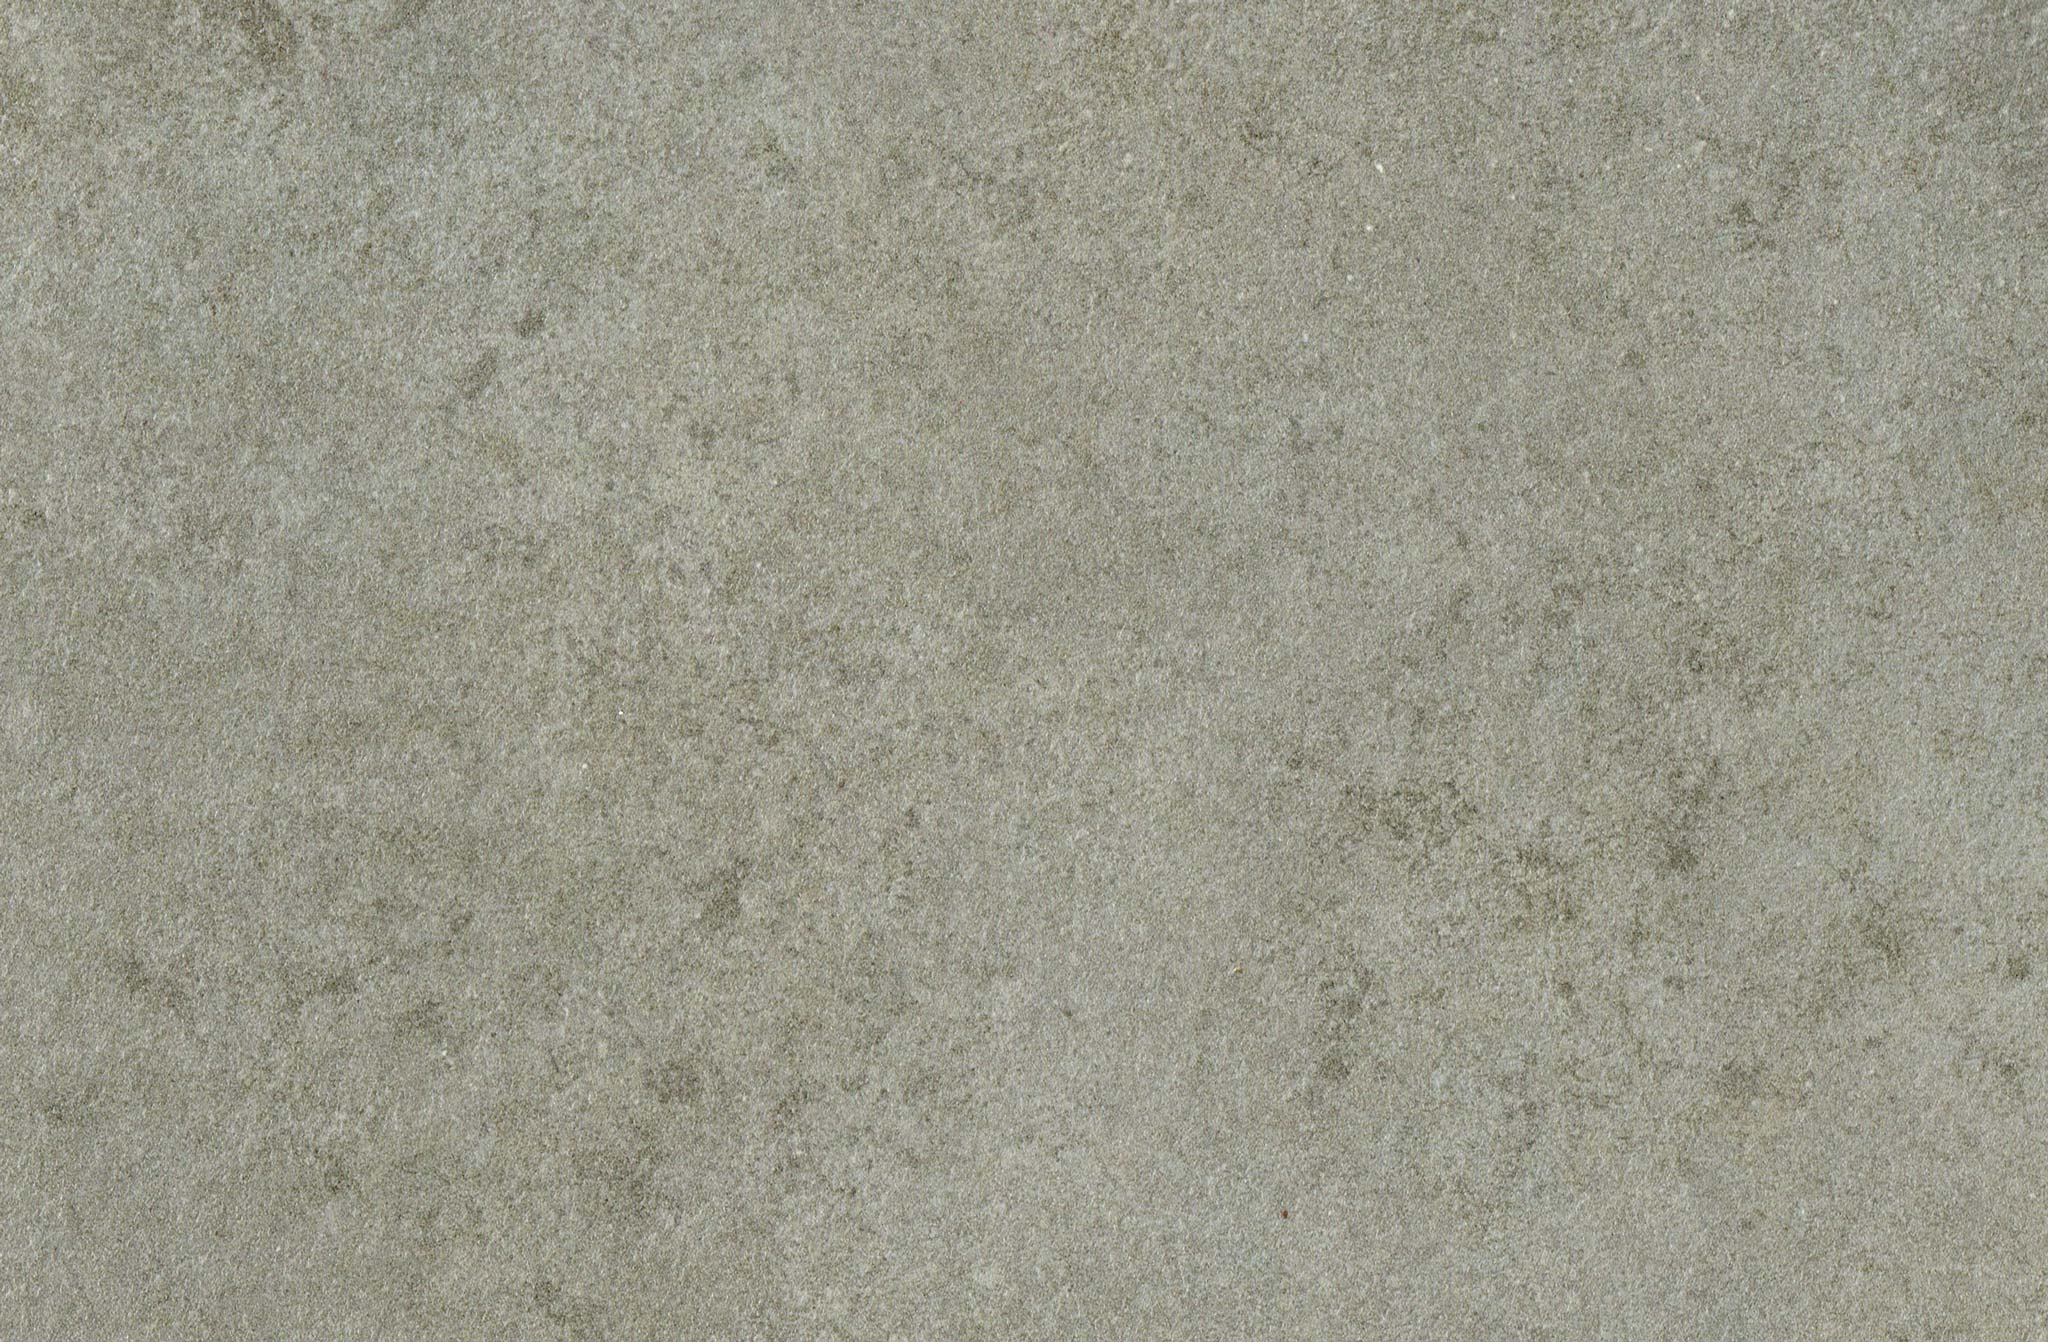 Aeon Salentina Argento worktop sample.